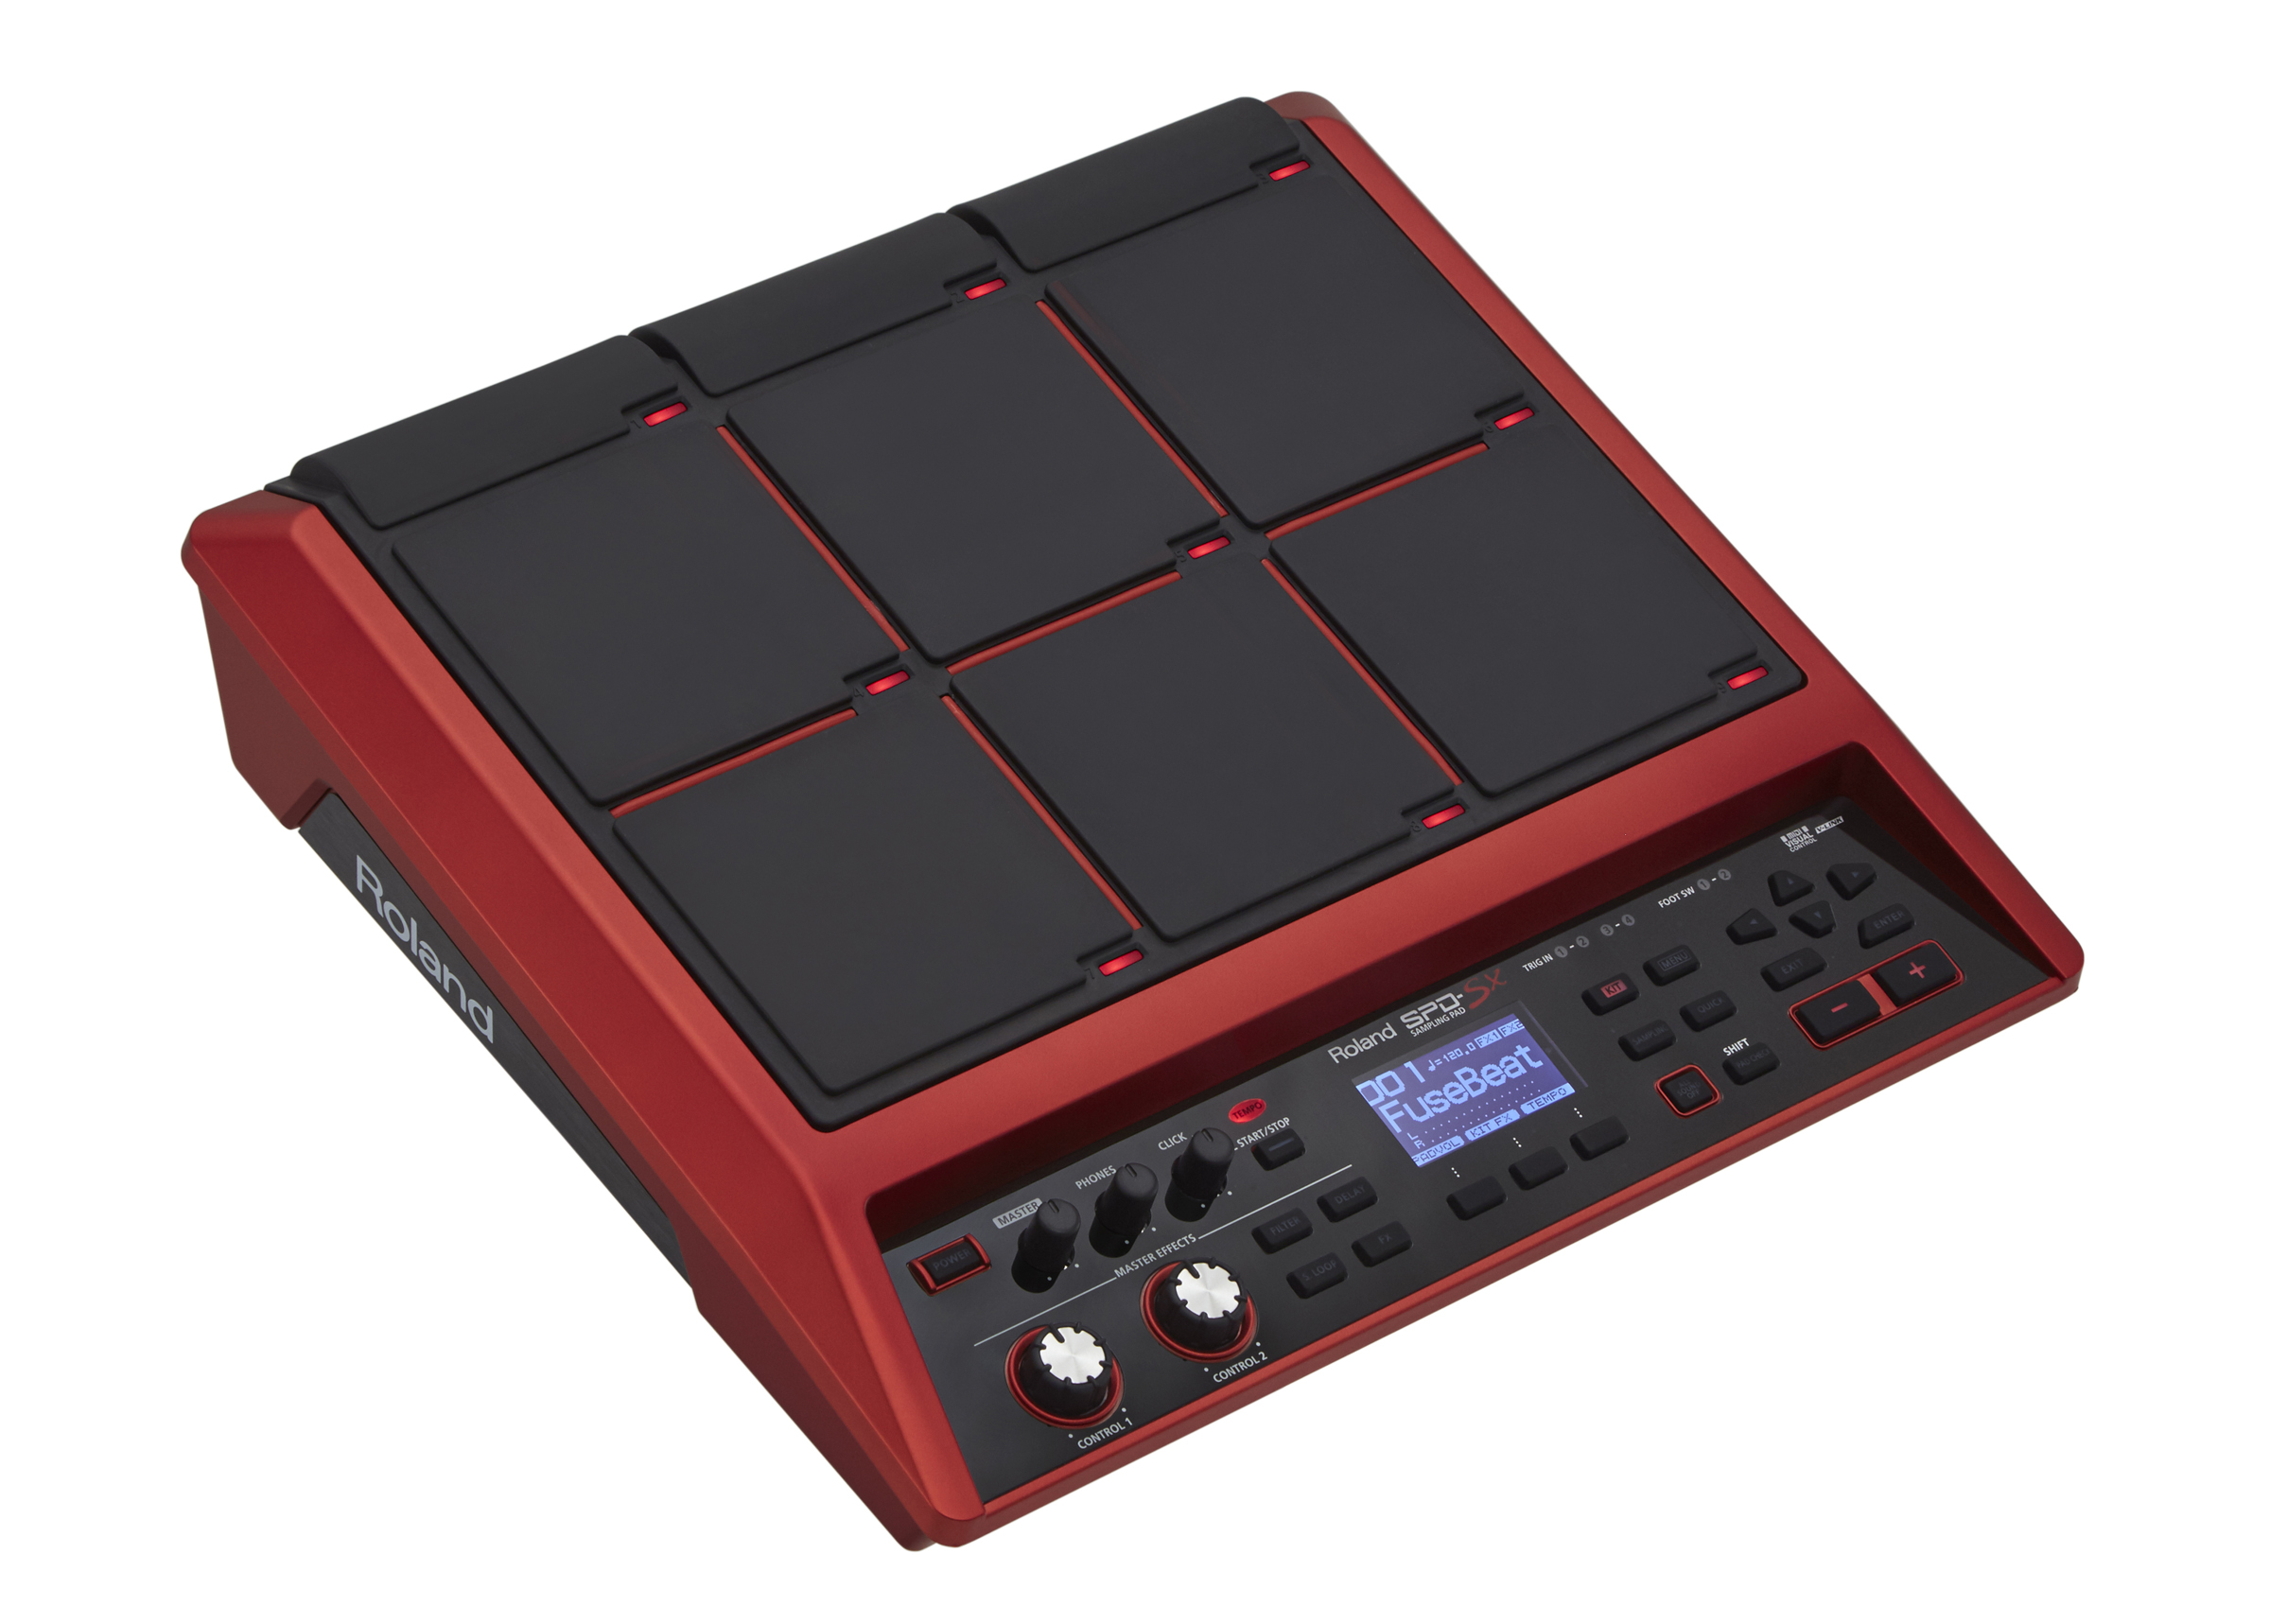 http://www.clynemedia.com/Roland/SPD_SX_SpEd_NowAvailable/Roland_SPD-SX_Angled.jpg